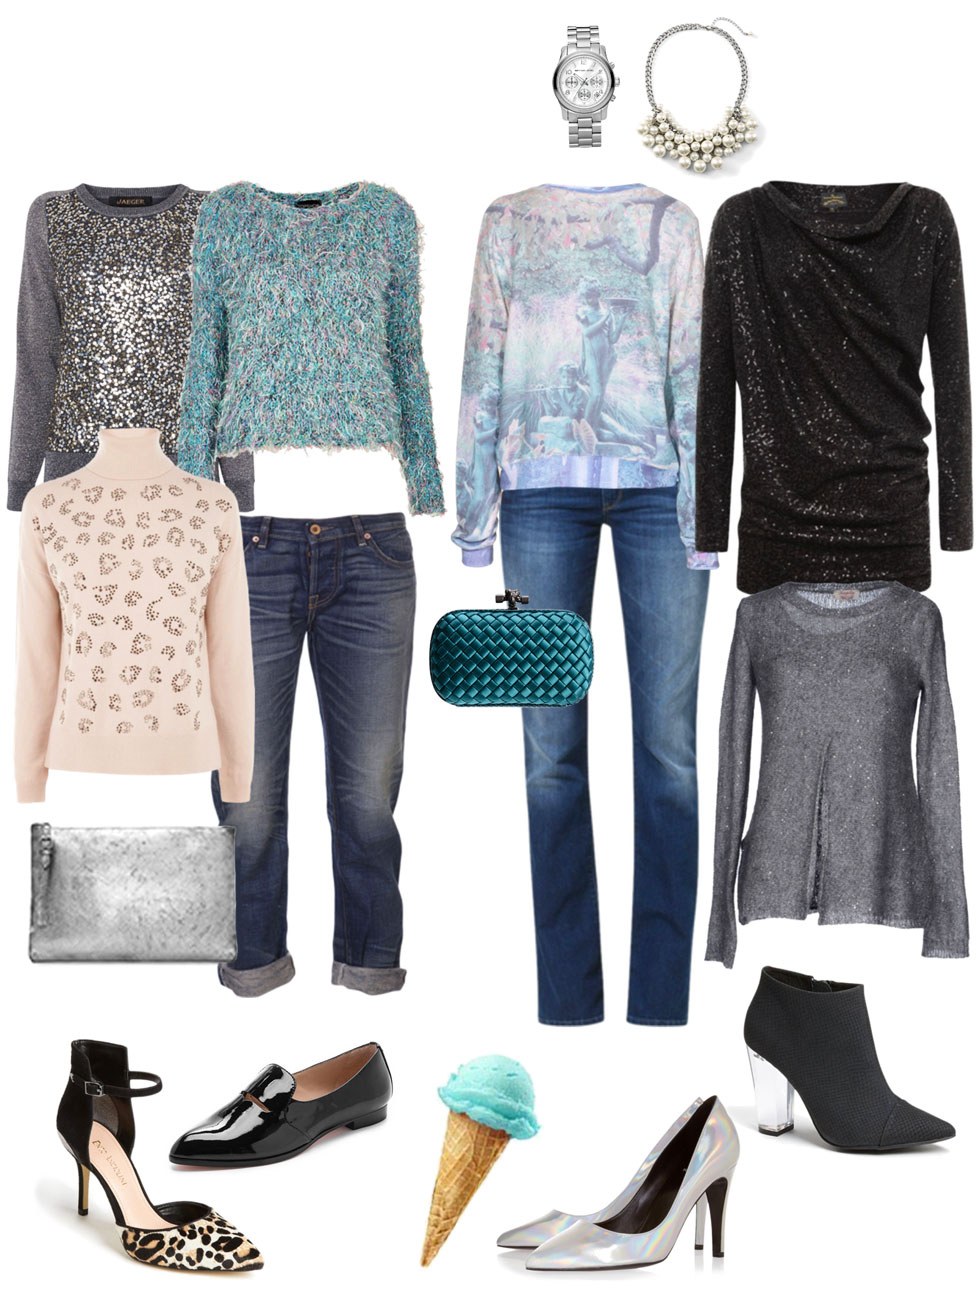 Party Ensemble Jeans and Festive Sweater - YLF